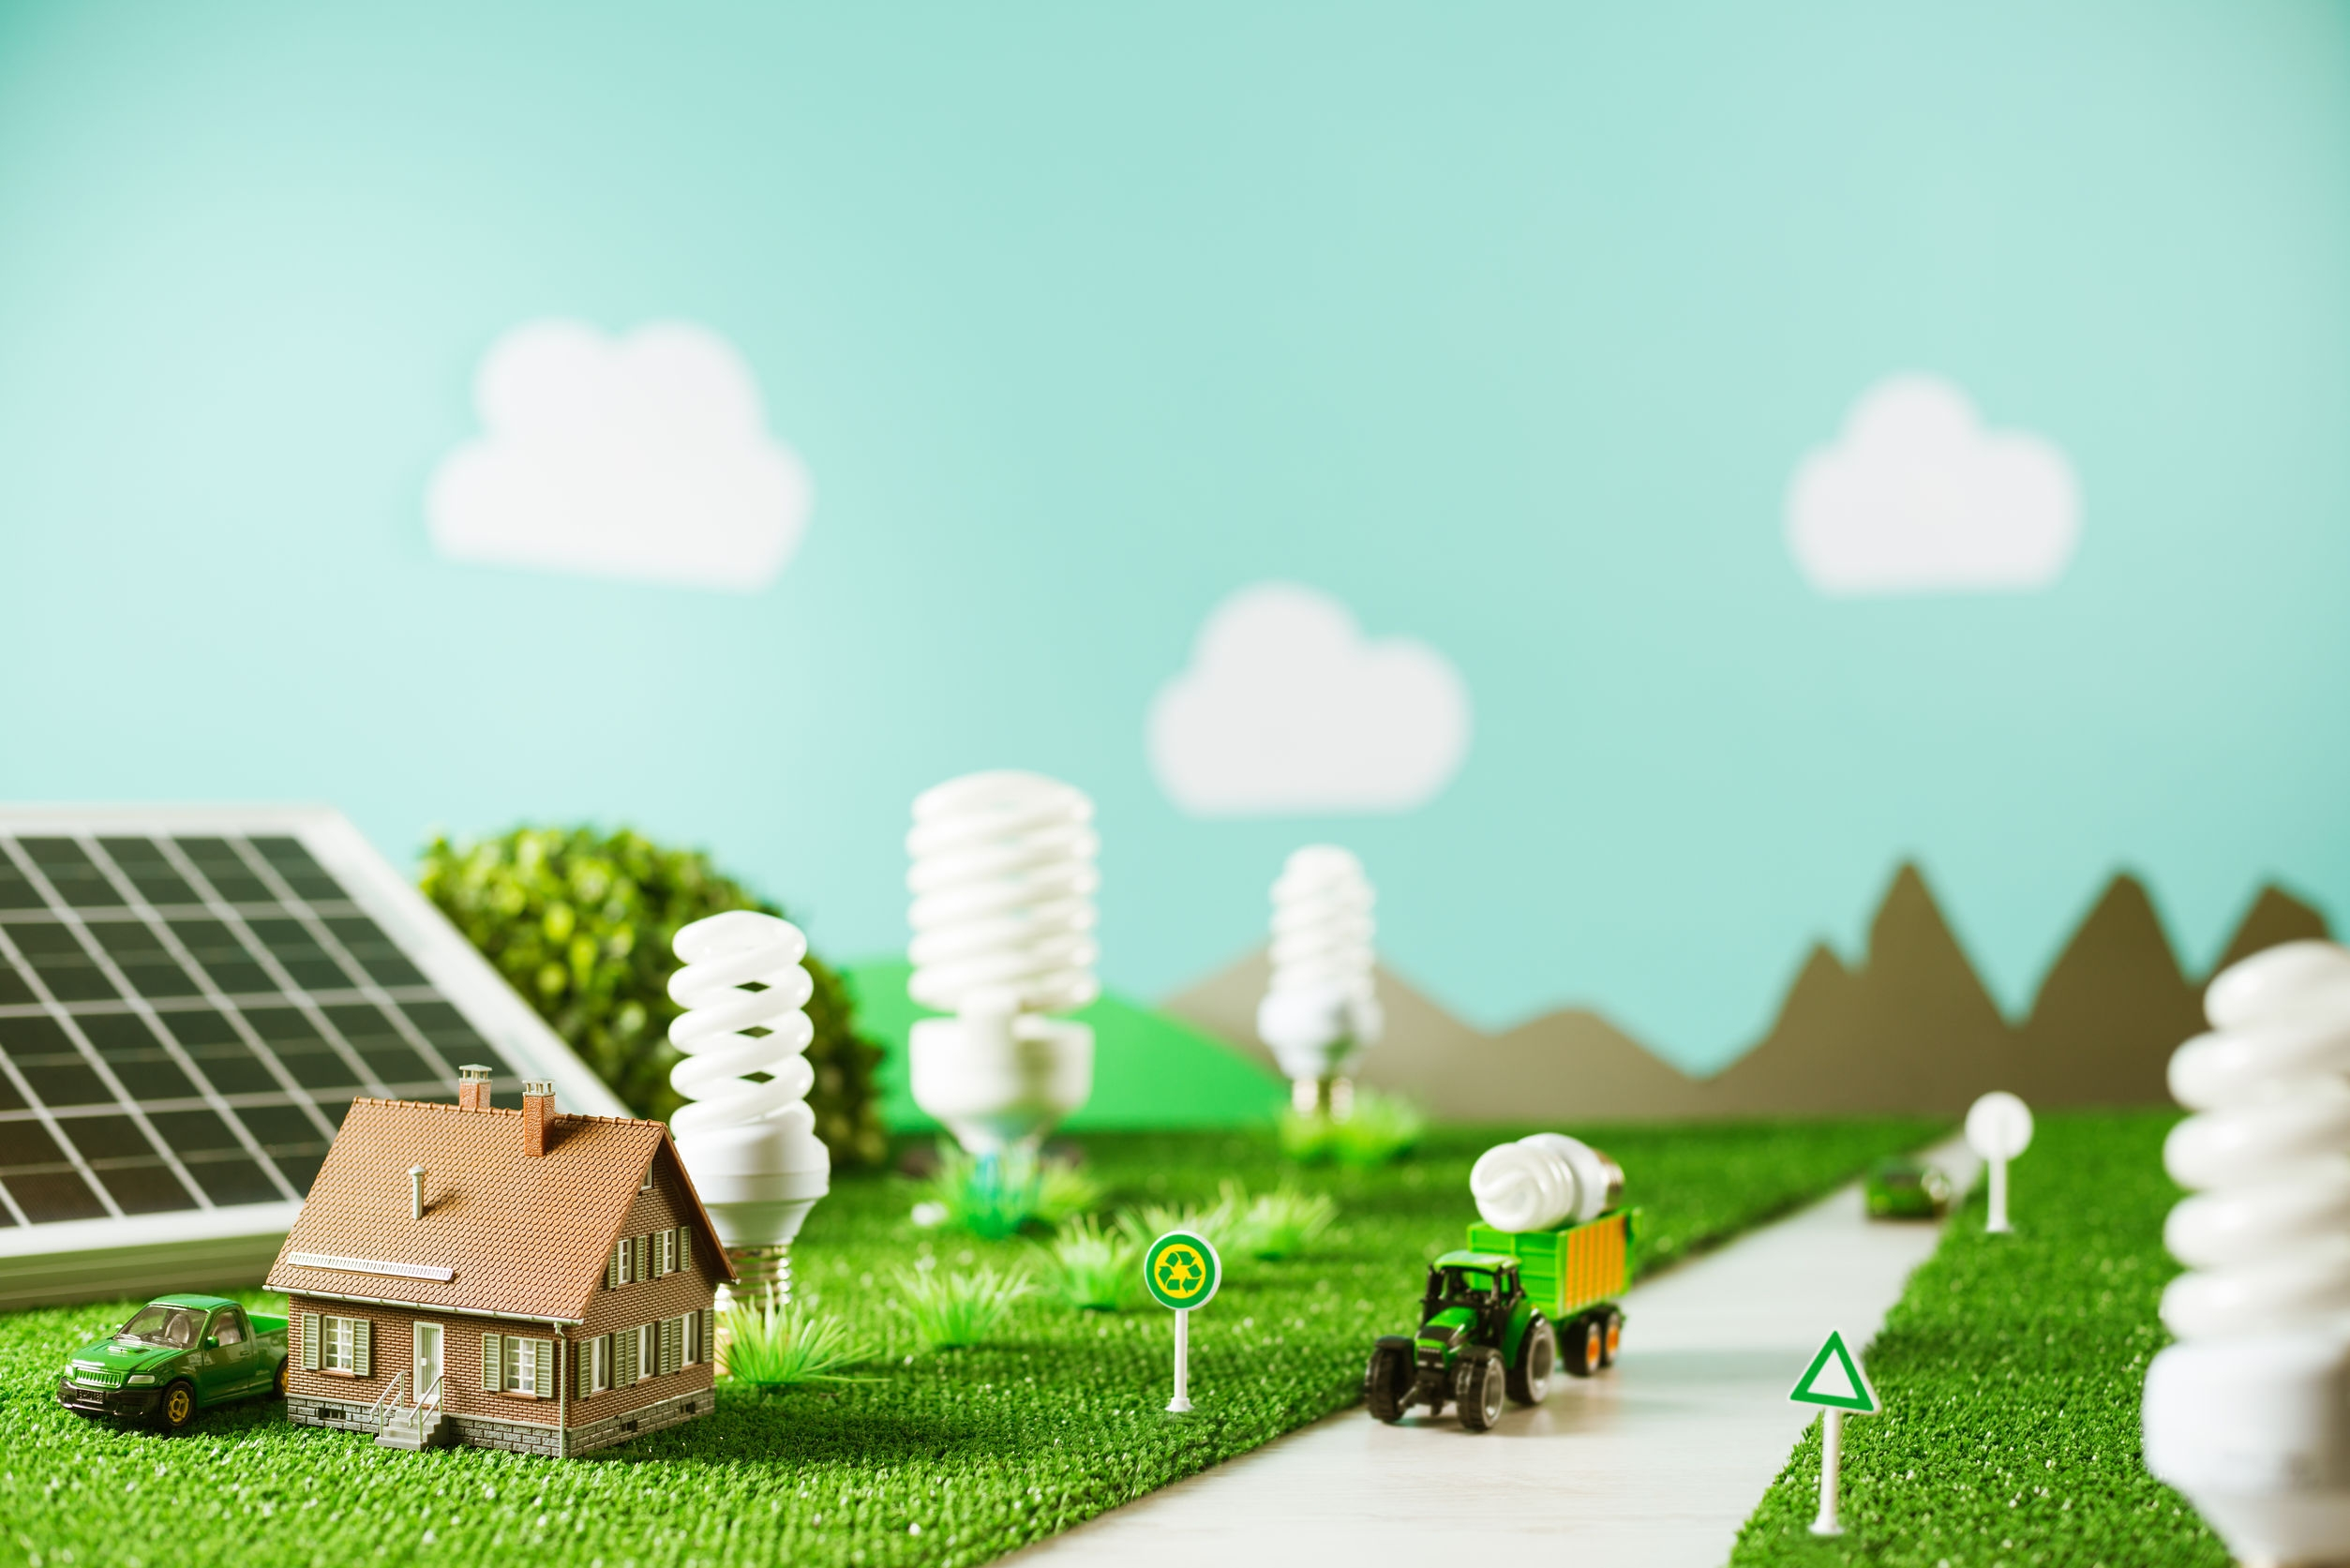 Design An Earth Friendly Home: Going Green Is Easier Than You Think